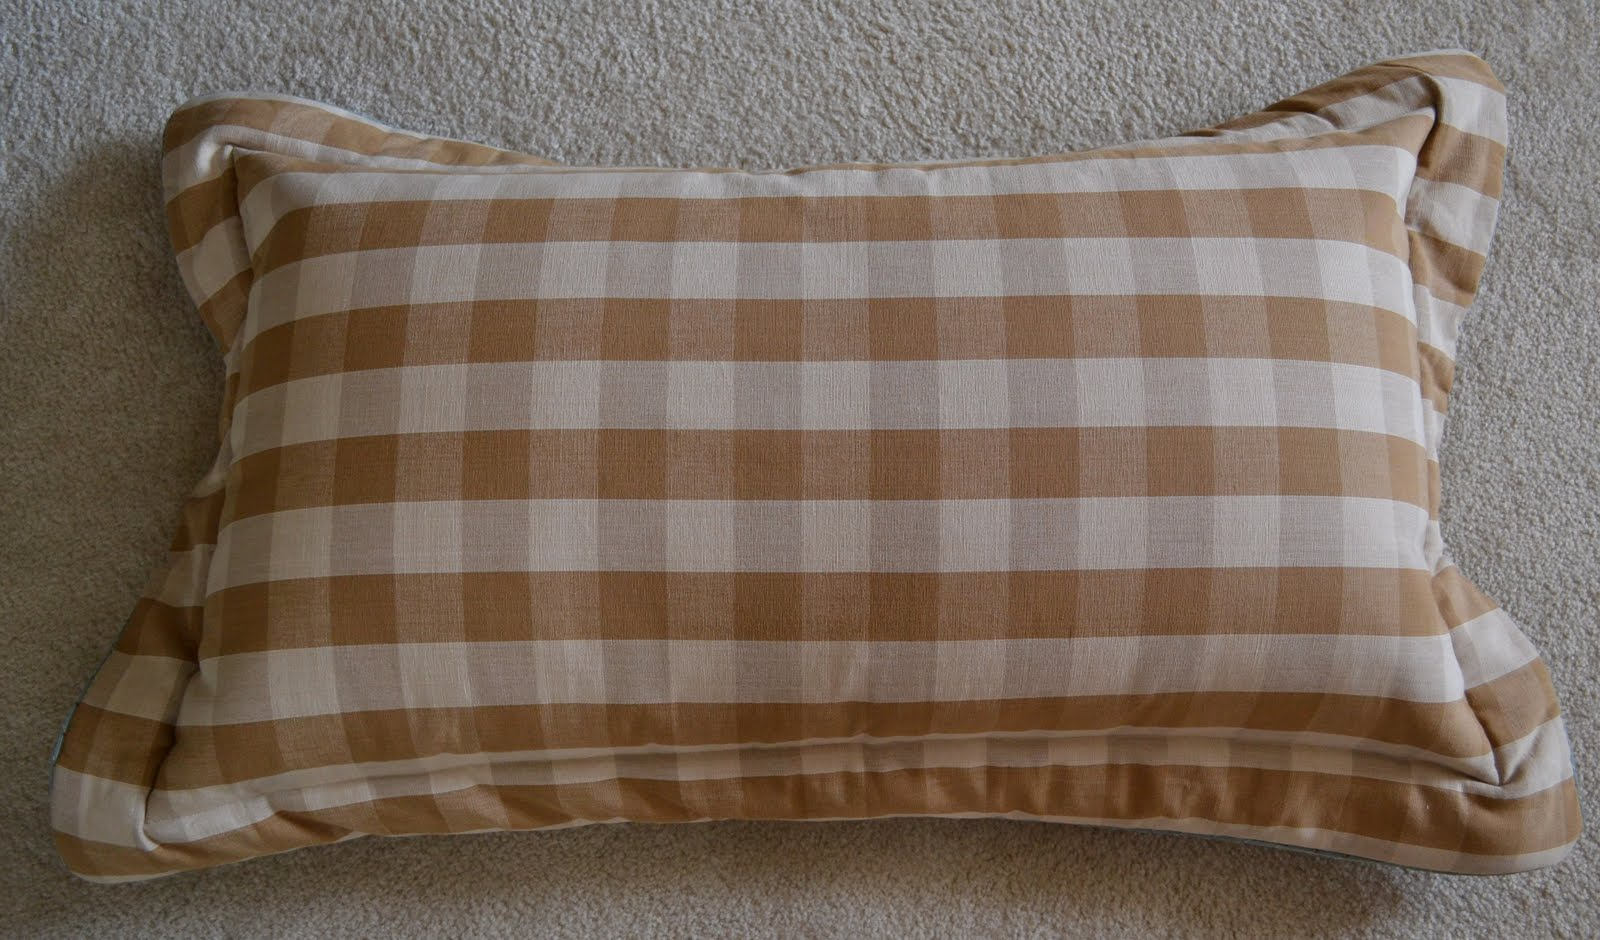 Preferred How to Make a Pillow Sham - Part 1 | Worthing Court BF96